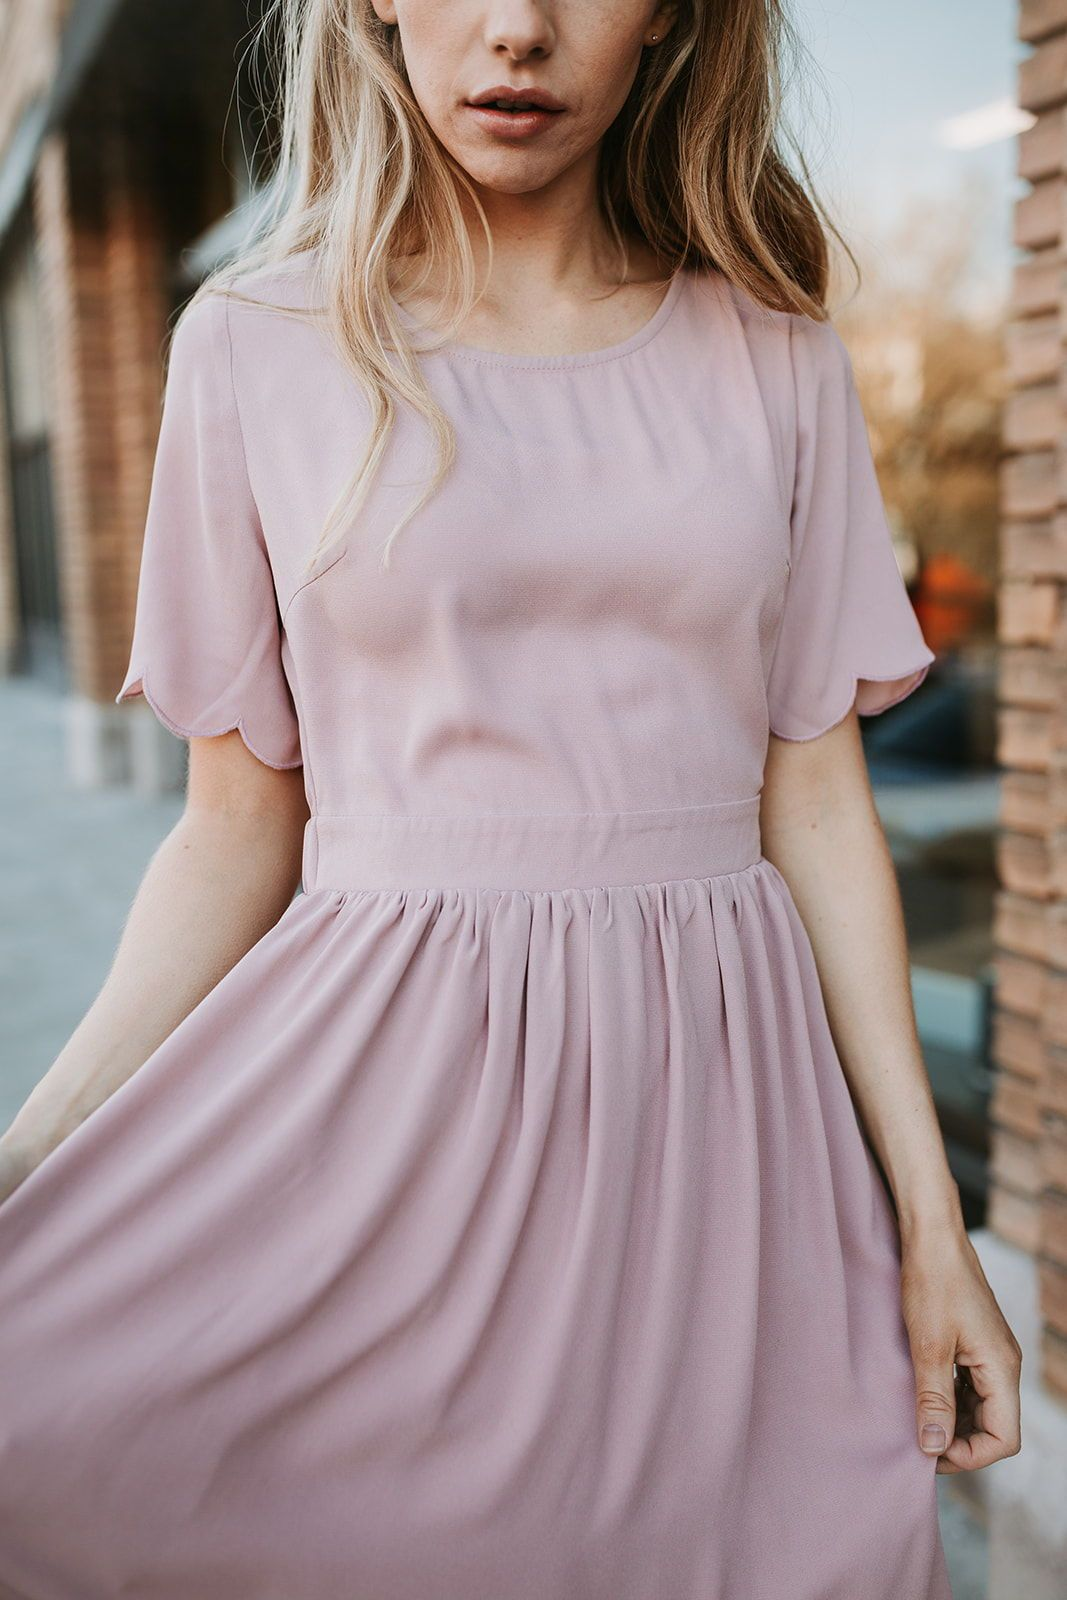 The Stephanie Scallop Sleeve Dress In Blush In 2020 Casual Dresses For Teens Casual Dresses Dresses